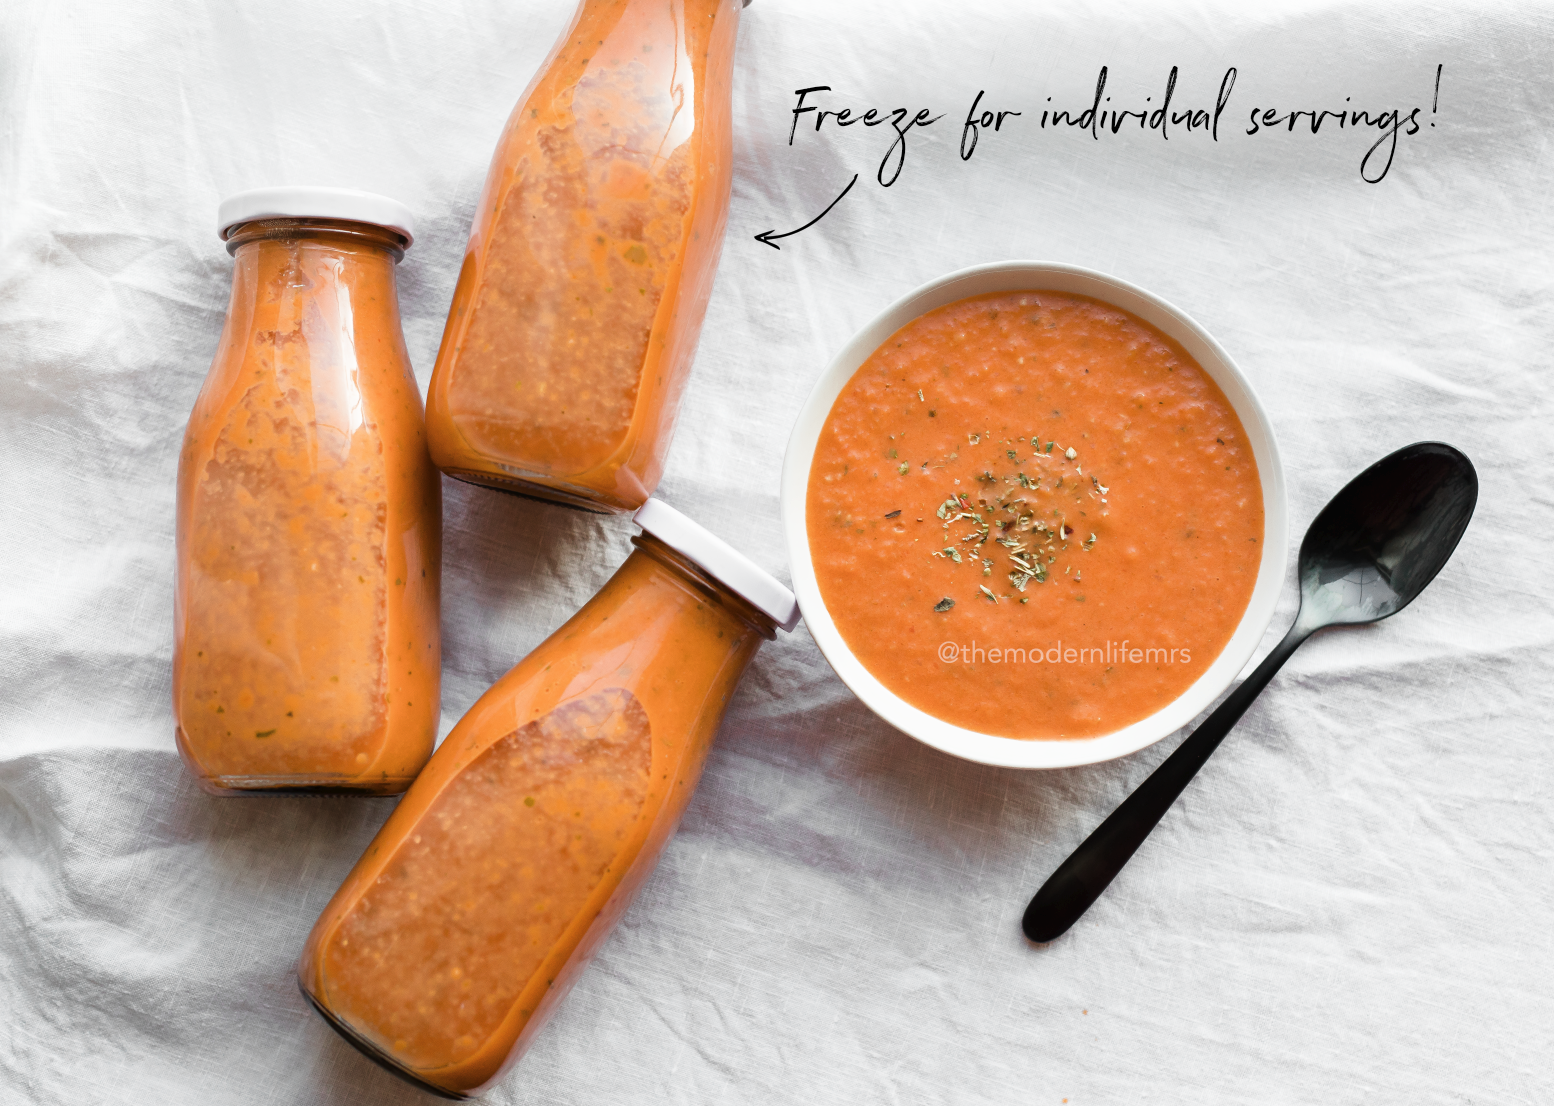 Modern Life Mrs - Tomato Bisque Soup